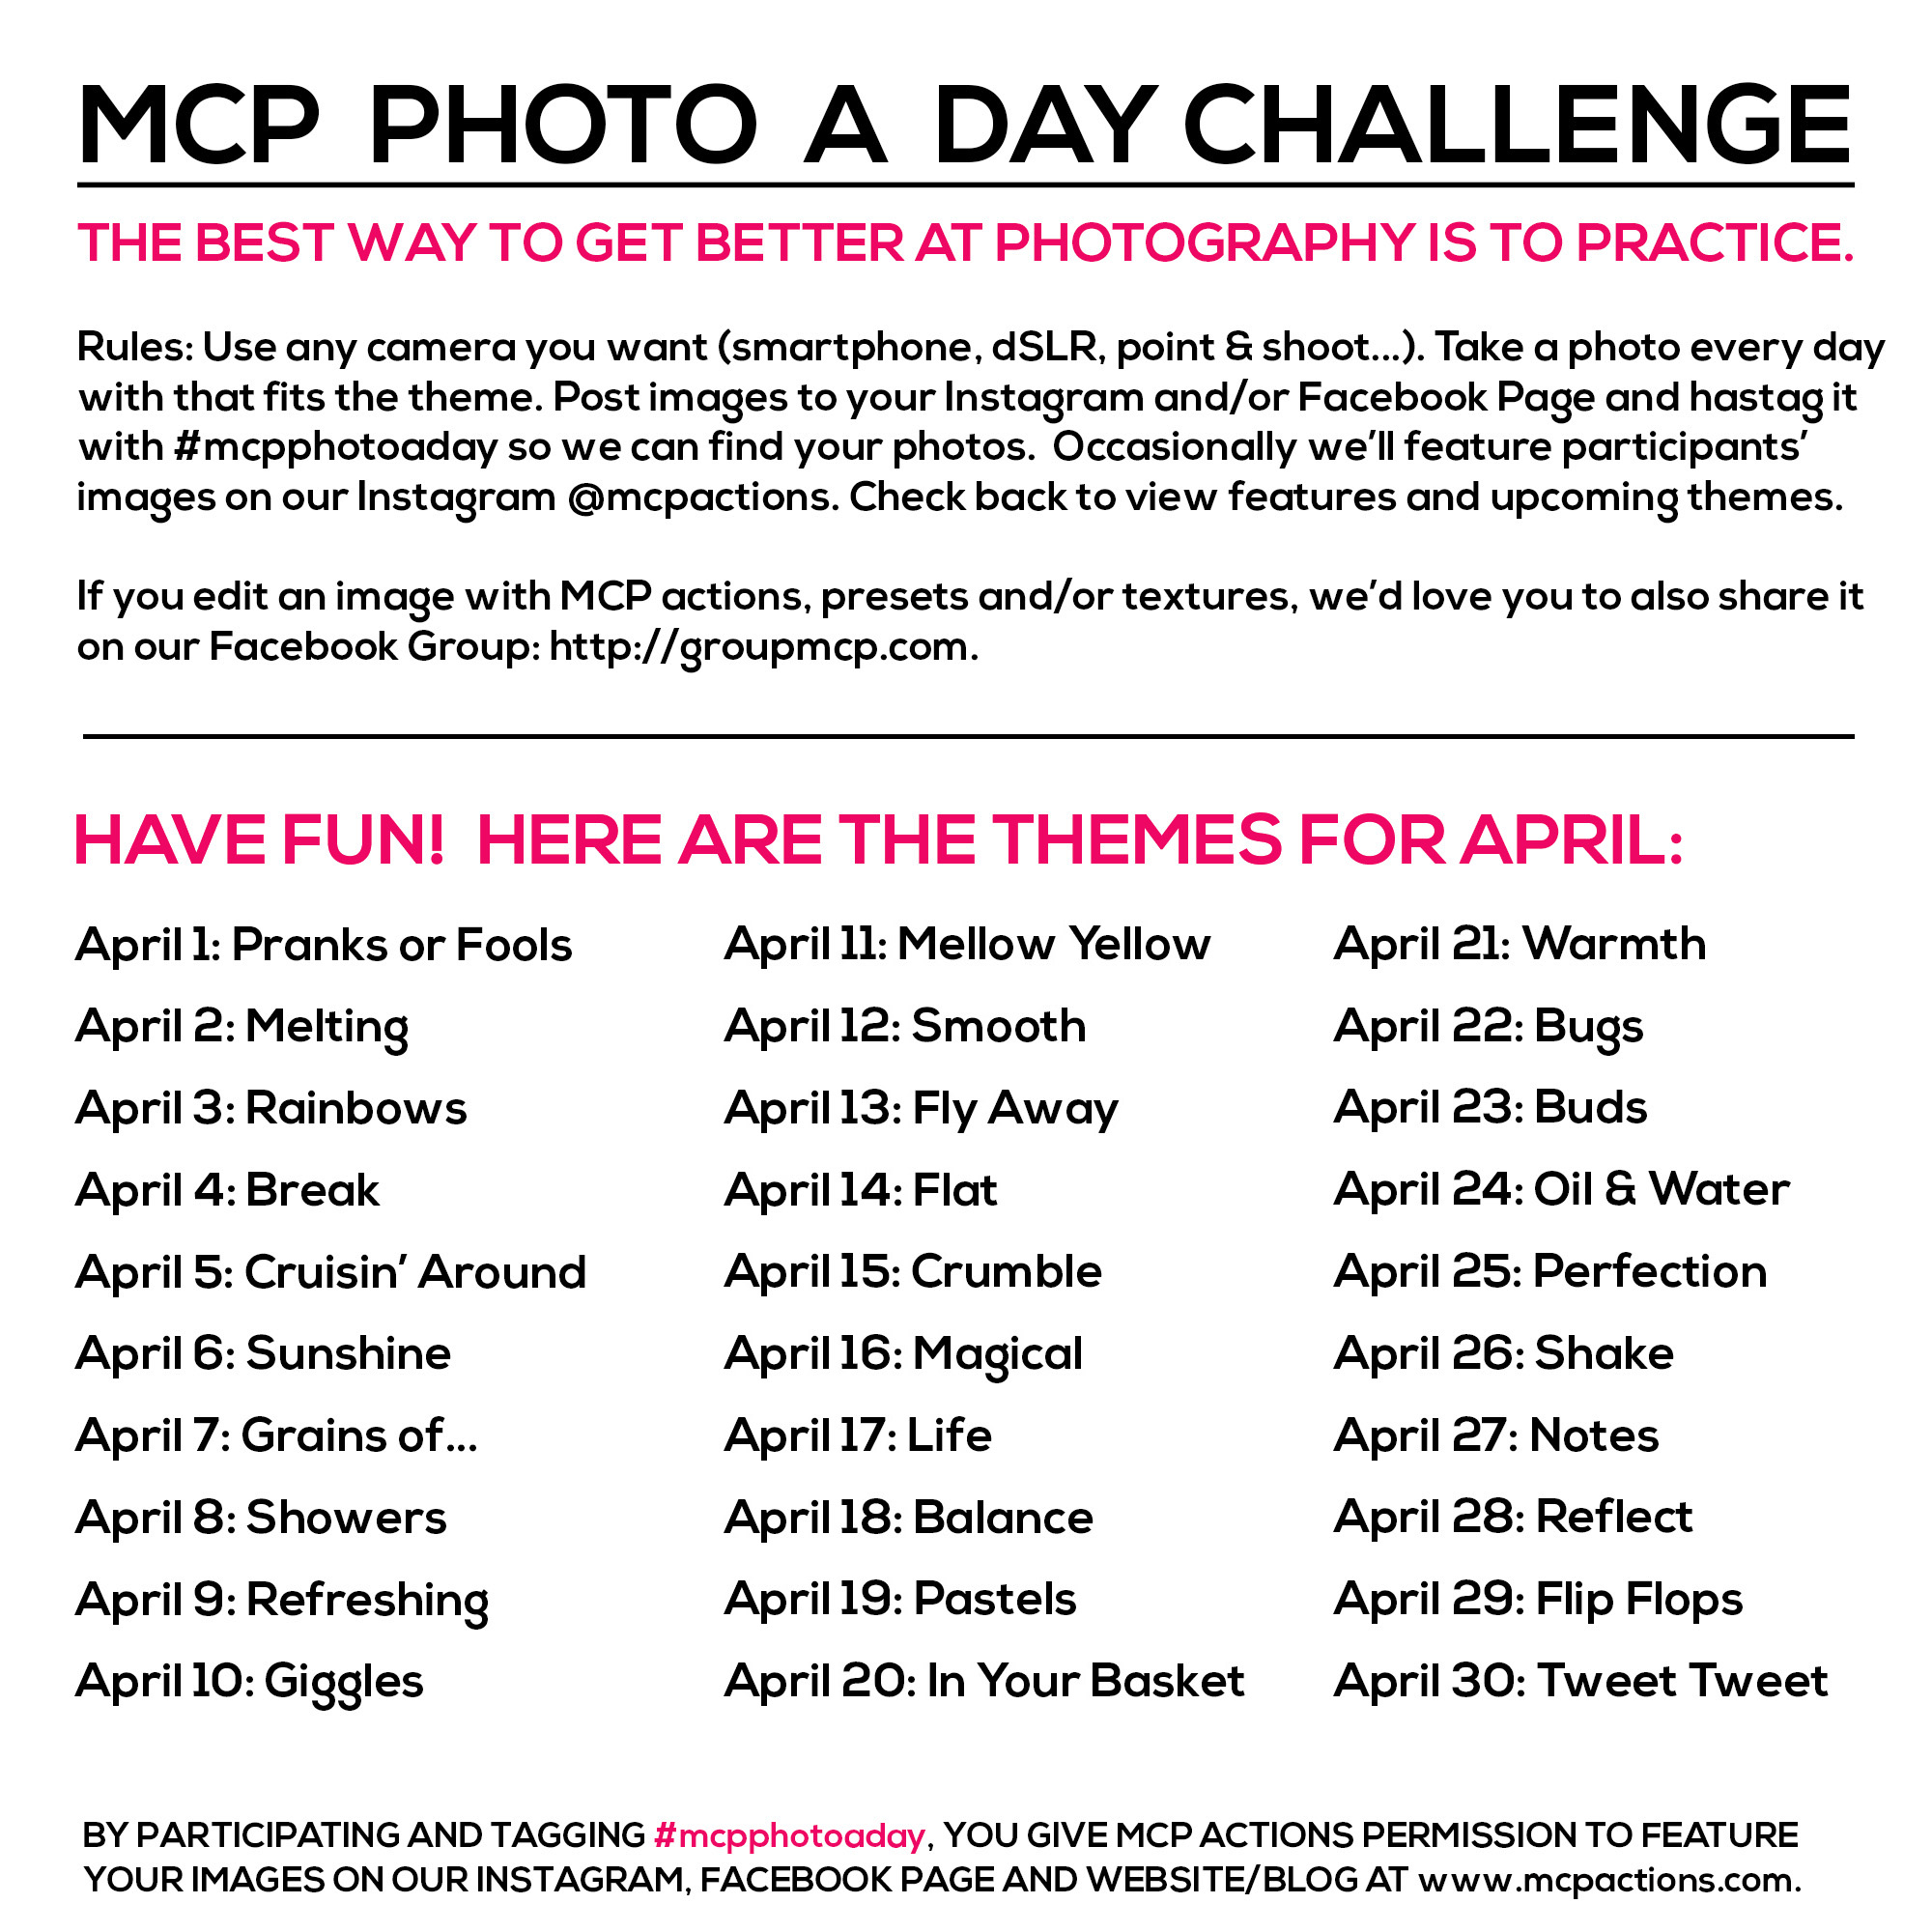 mcpphotoaday-April MCP Photo A Day Challenge: April 2015 Themes Activities Announcements Assignments